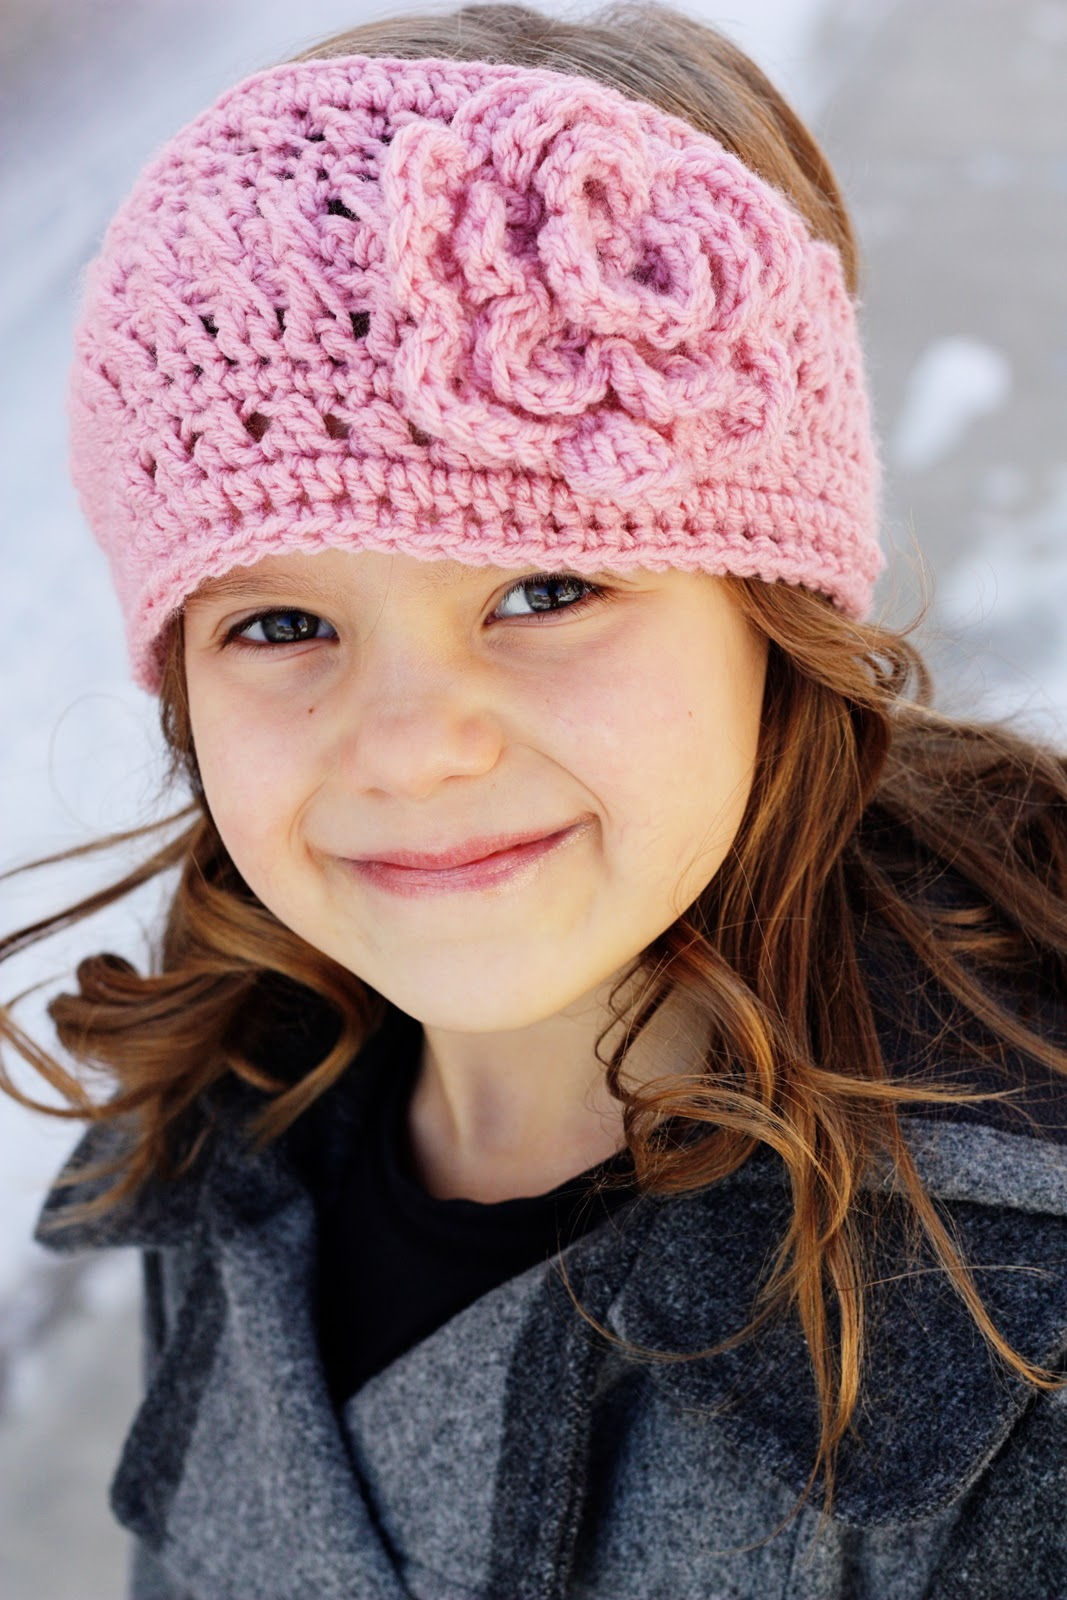 Free Crochet Pattern For Easy Headband : CROCHET PATTERNS FOR HEADBANDS - Crochet Club